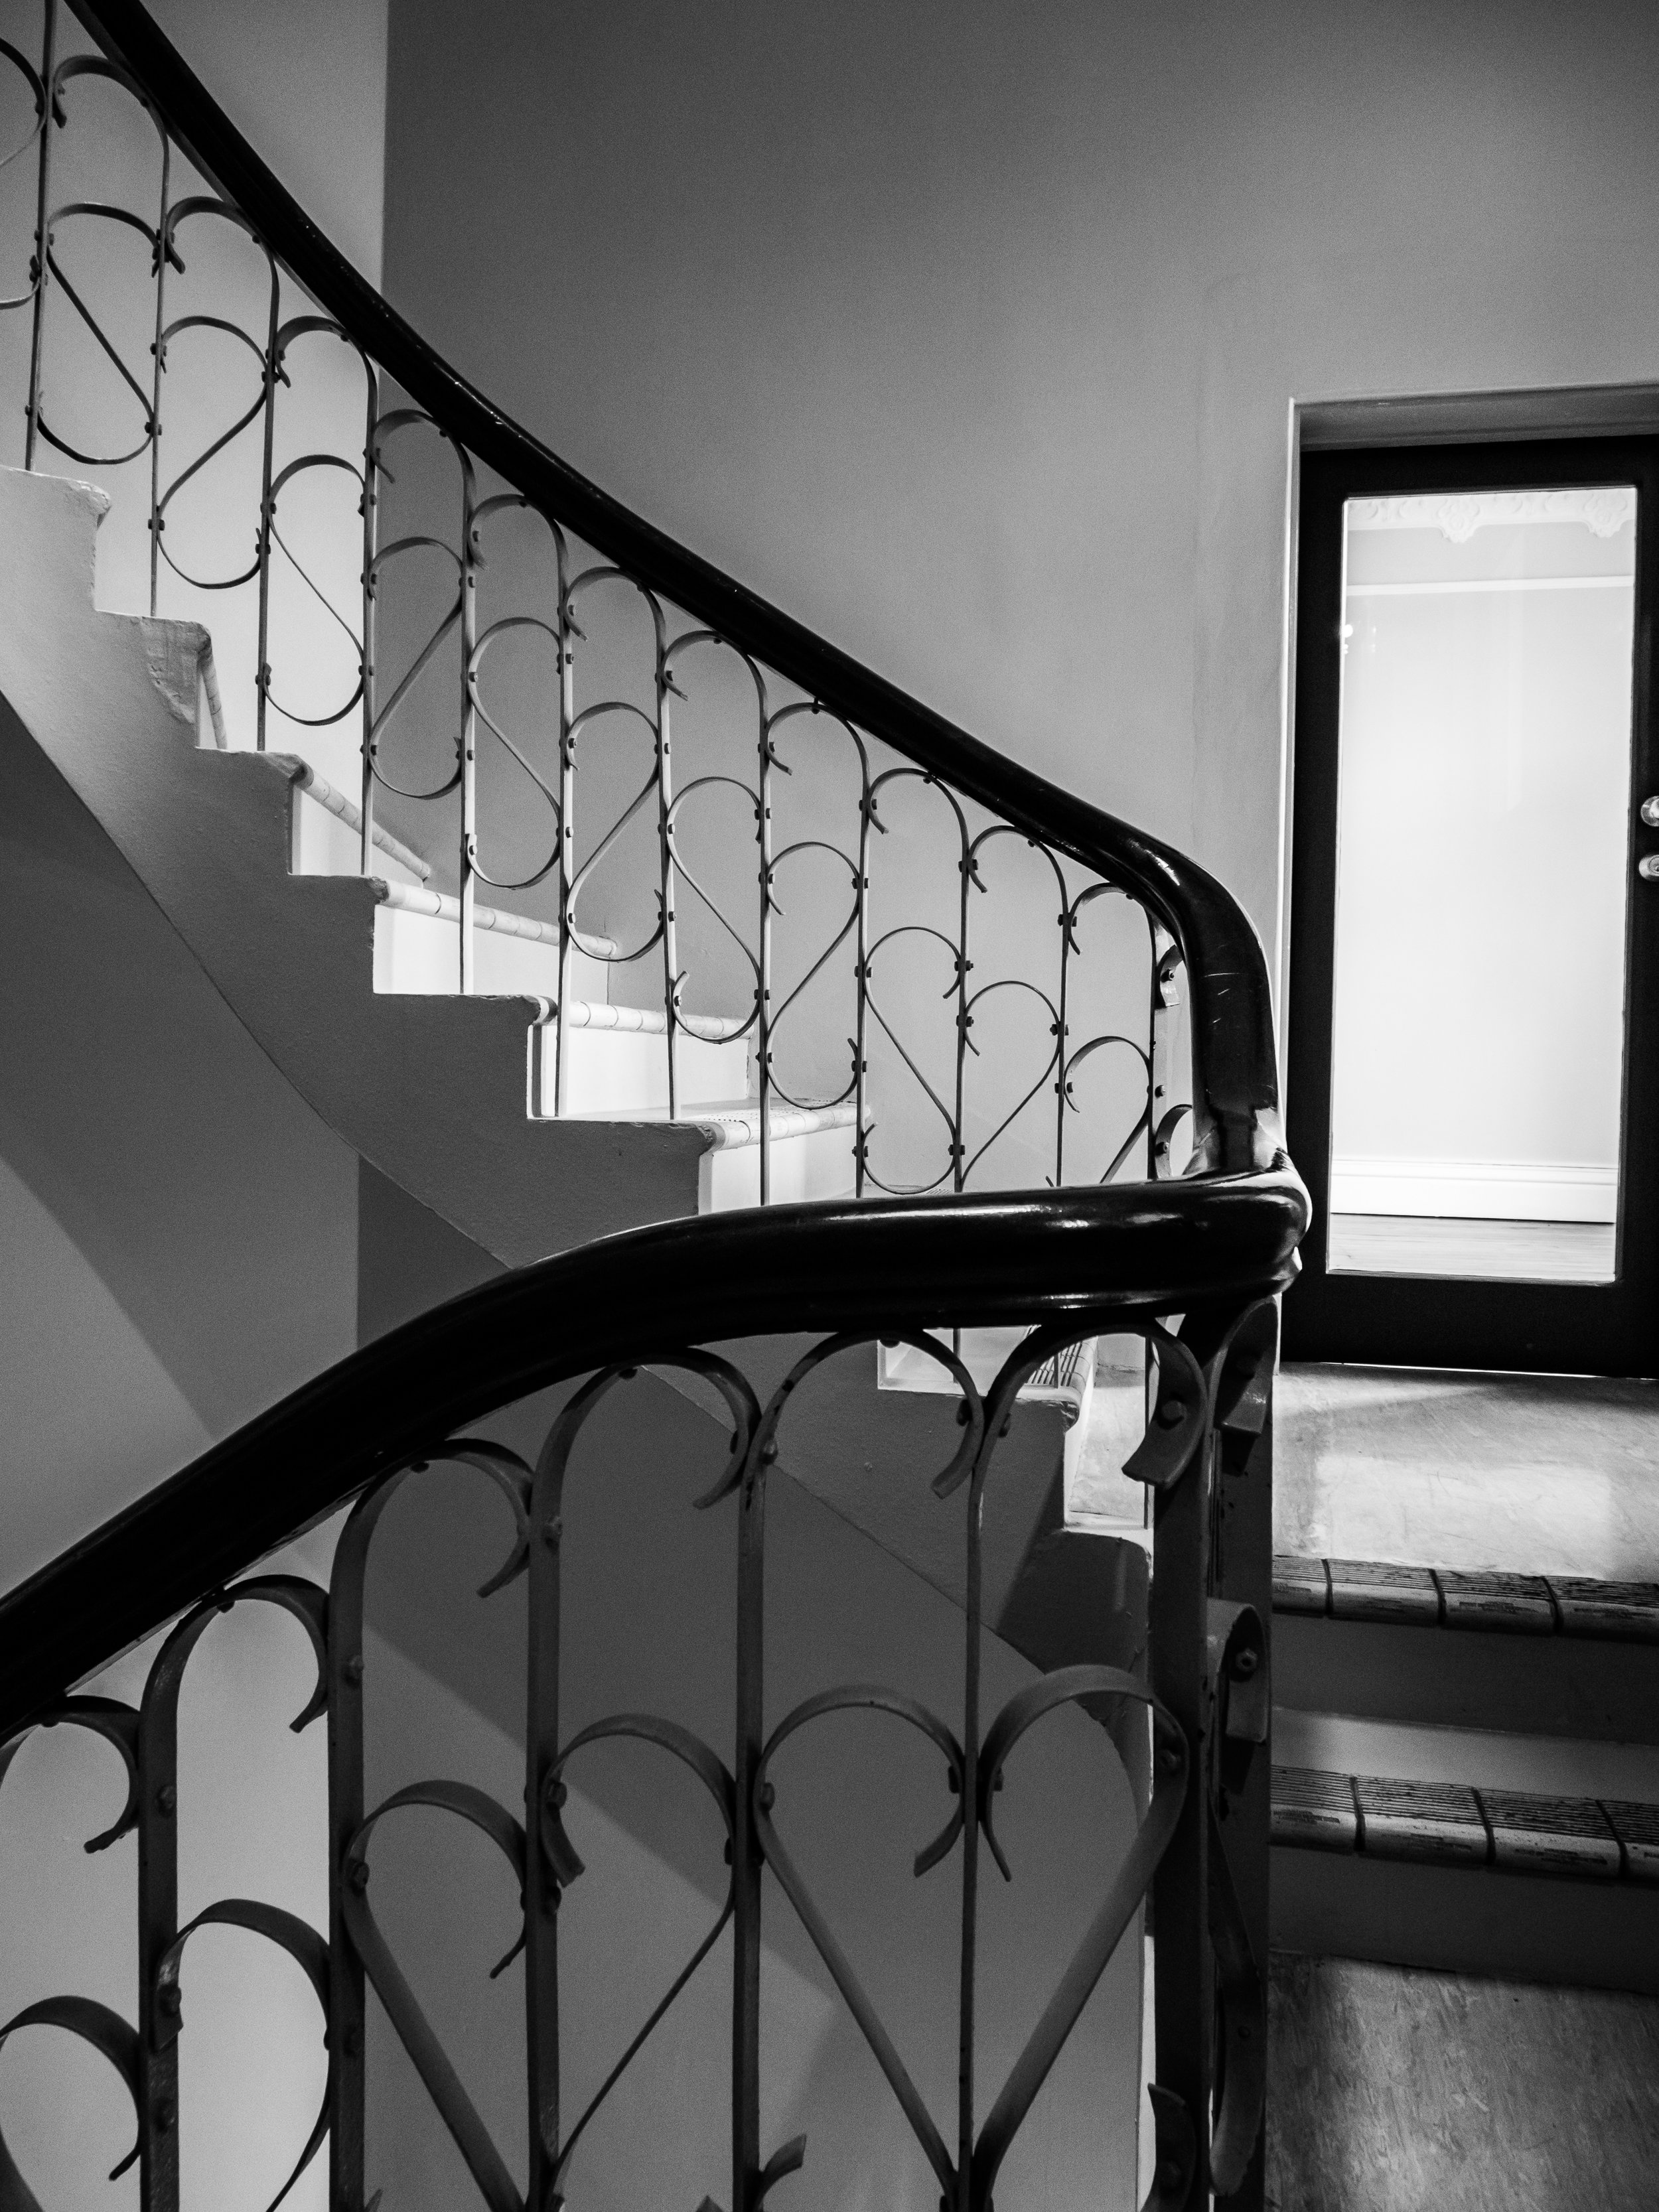 Curving staircase heritage in dunedin black and white